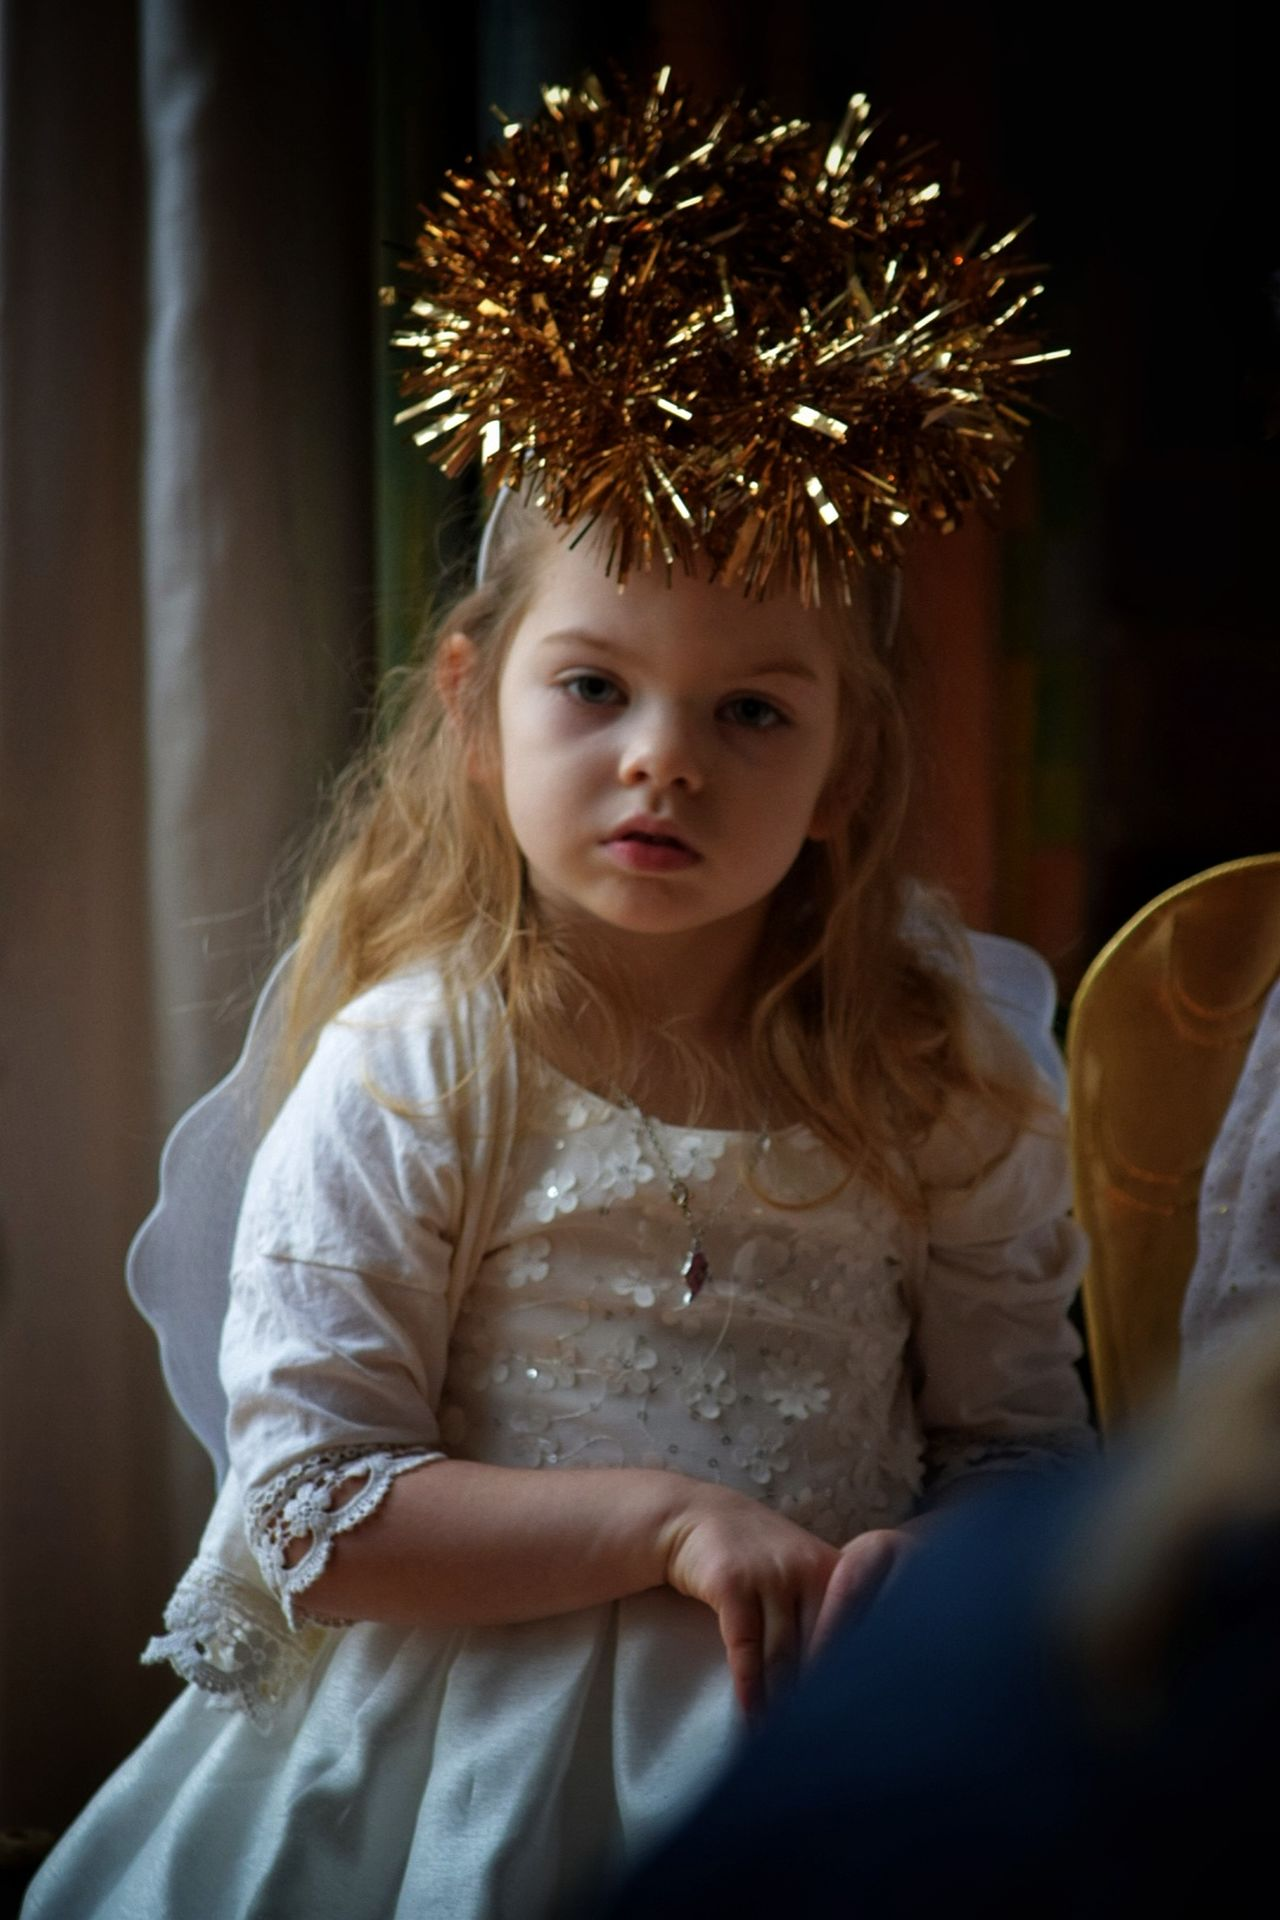 Portrait Looking At Camera Child Cute Crown Childhood Blond Hair One Girl Only Children Only Beauty Indoors  Day People One Person Girls Nativity School Play Christmas Angel Niece  Calm Serene Long Hair White